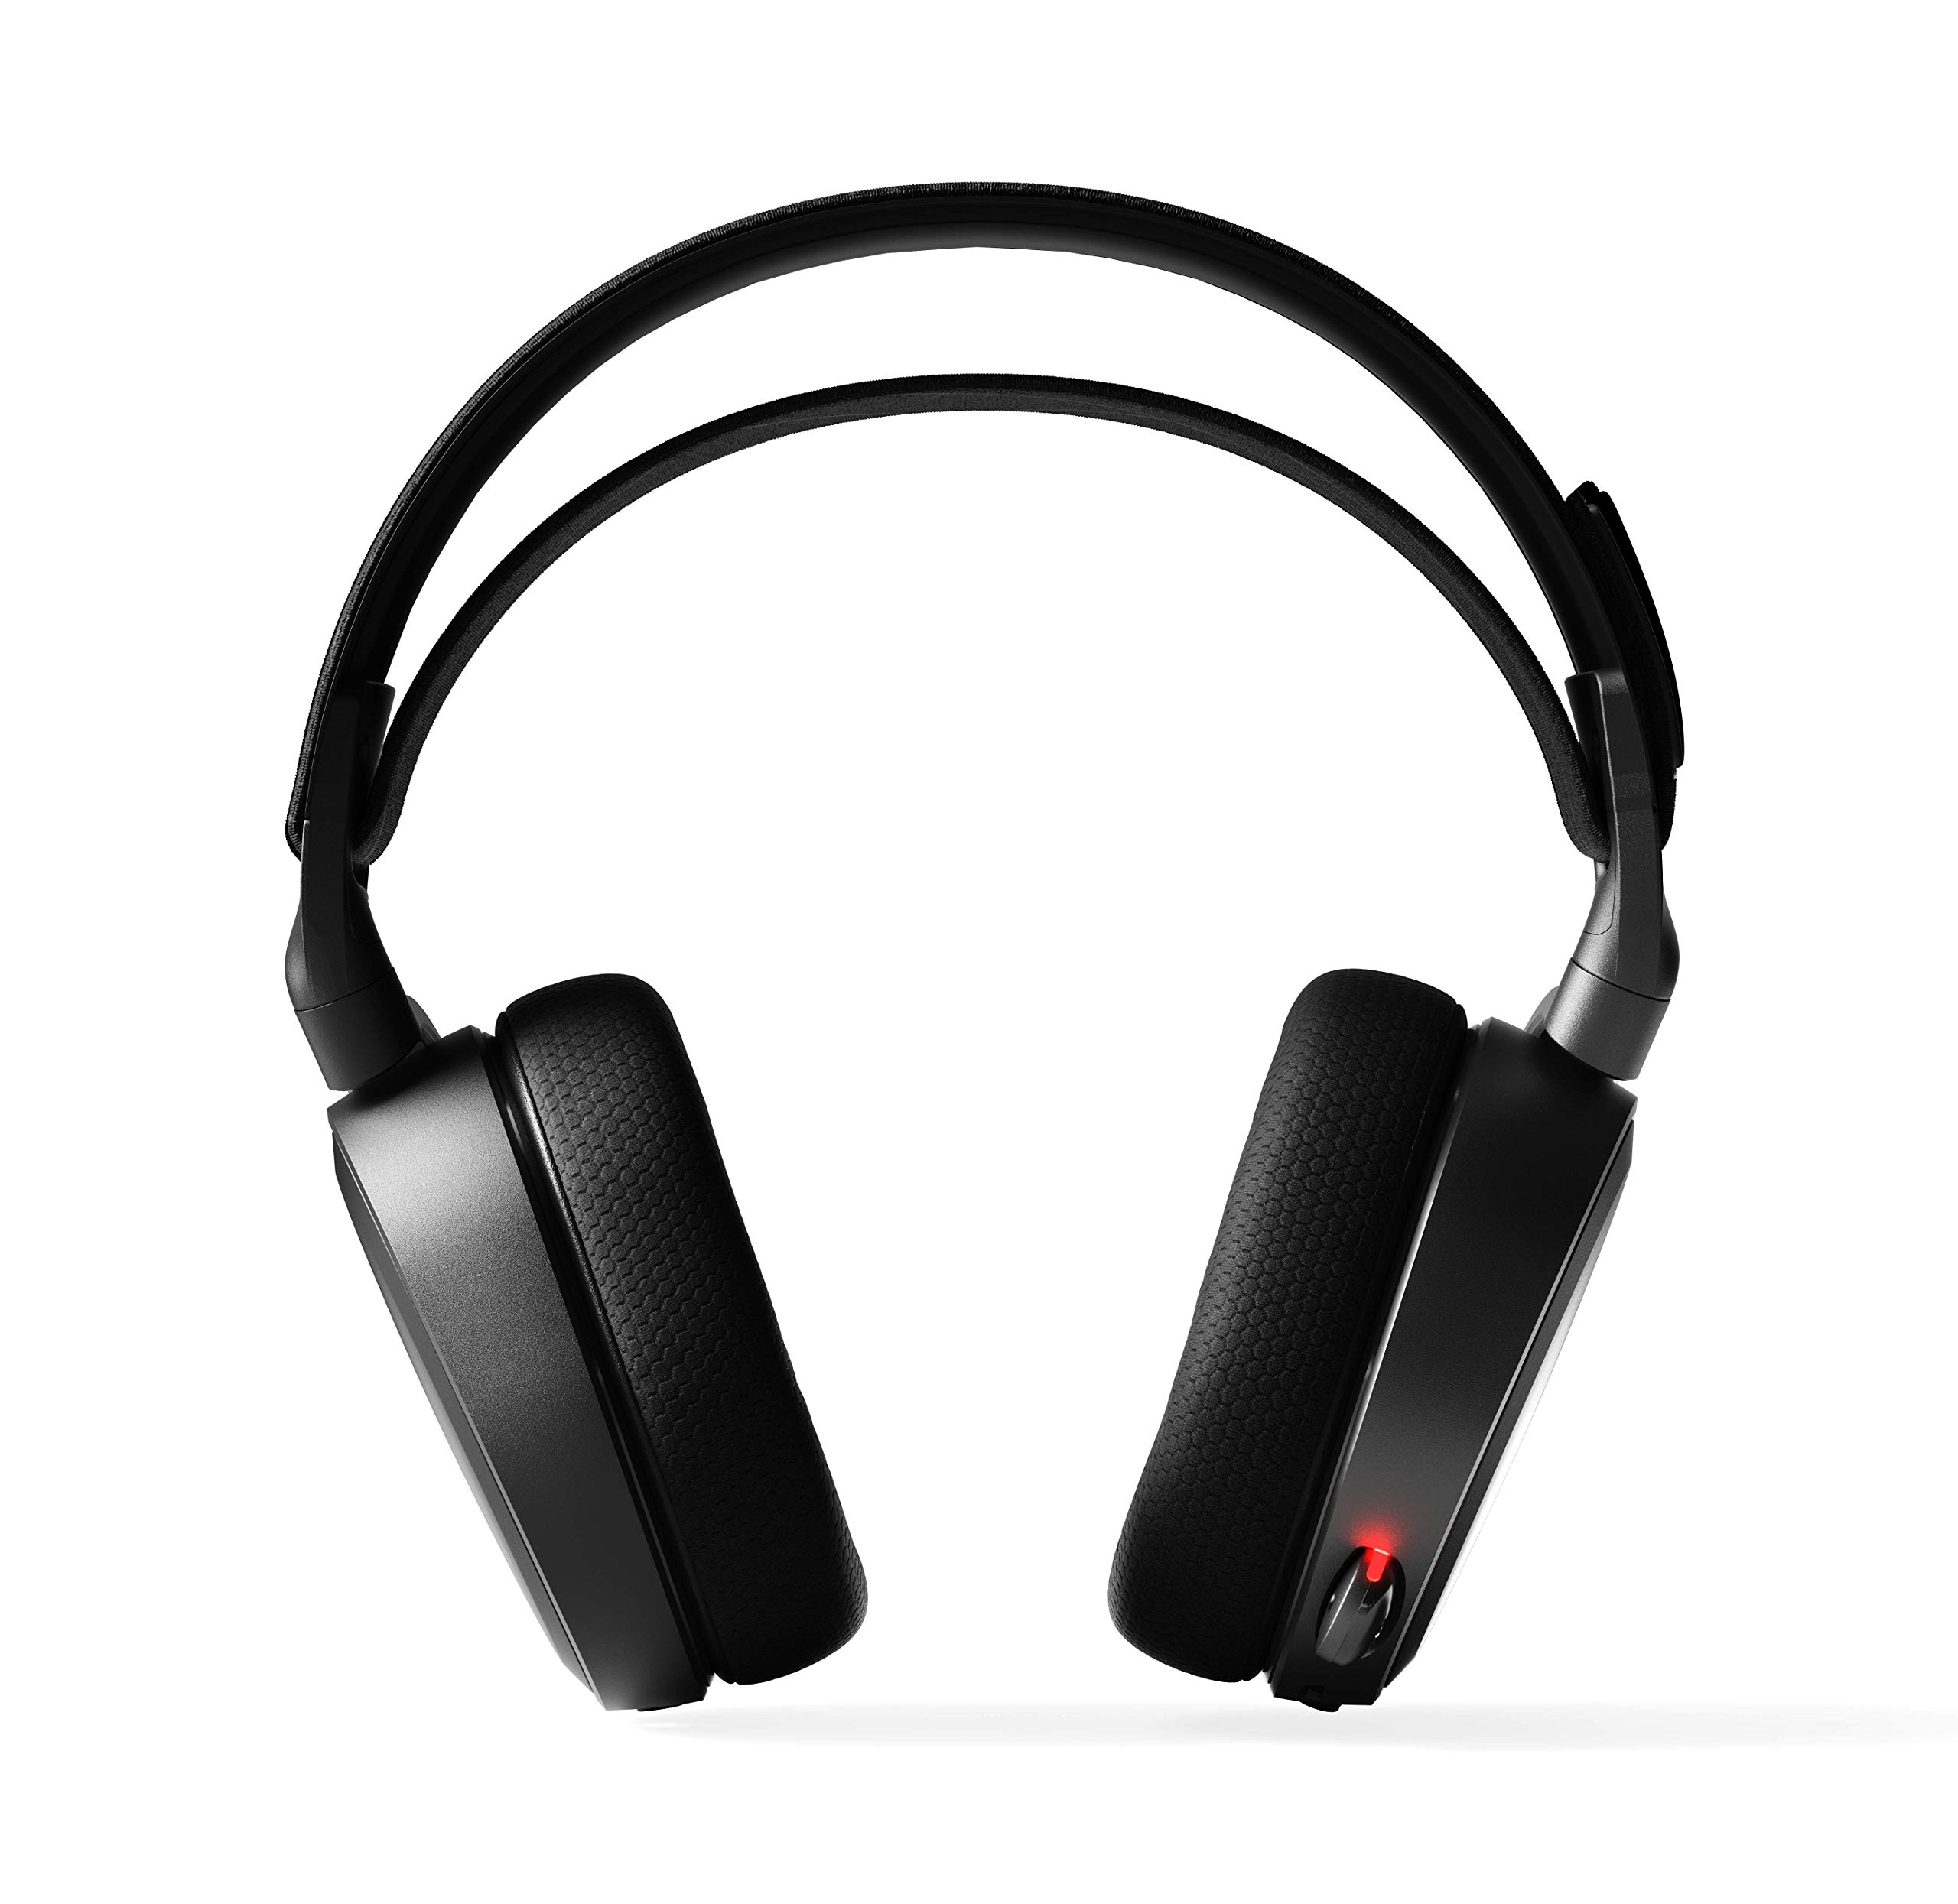 755e3b5c83d Designed for gaming, the 2.4G connection delivers rock-solid, lossless  wireless audio with ultra-low latency and zero interference ...